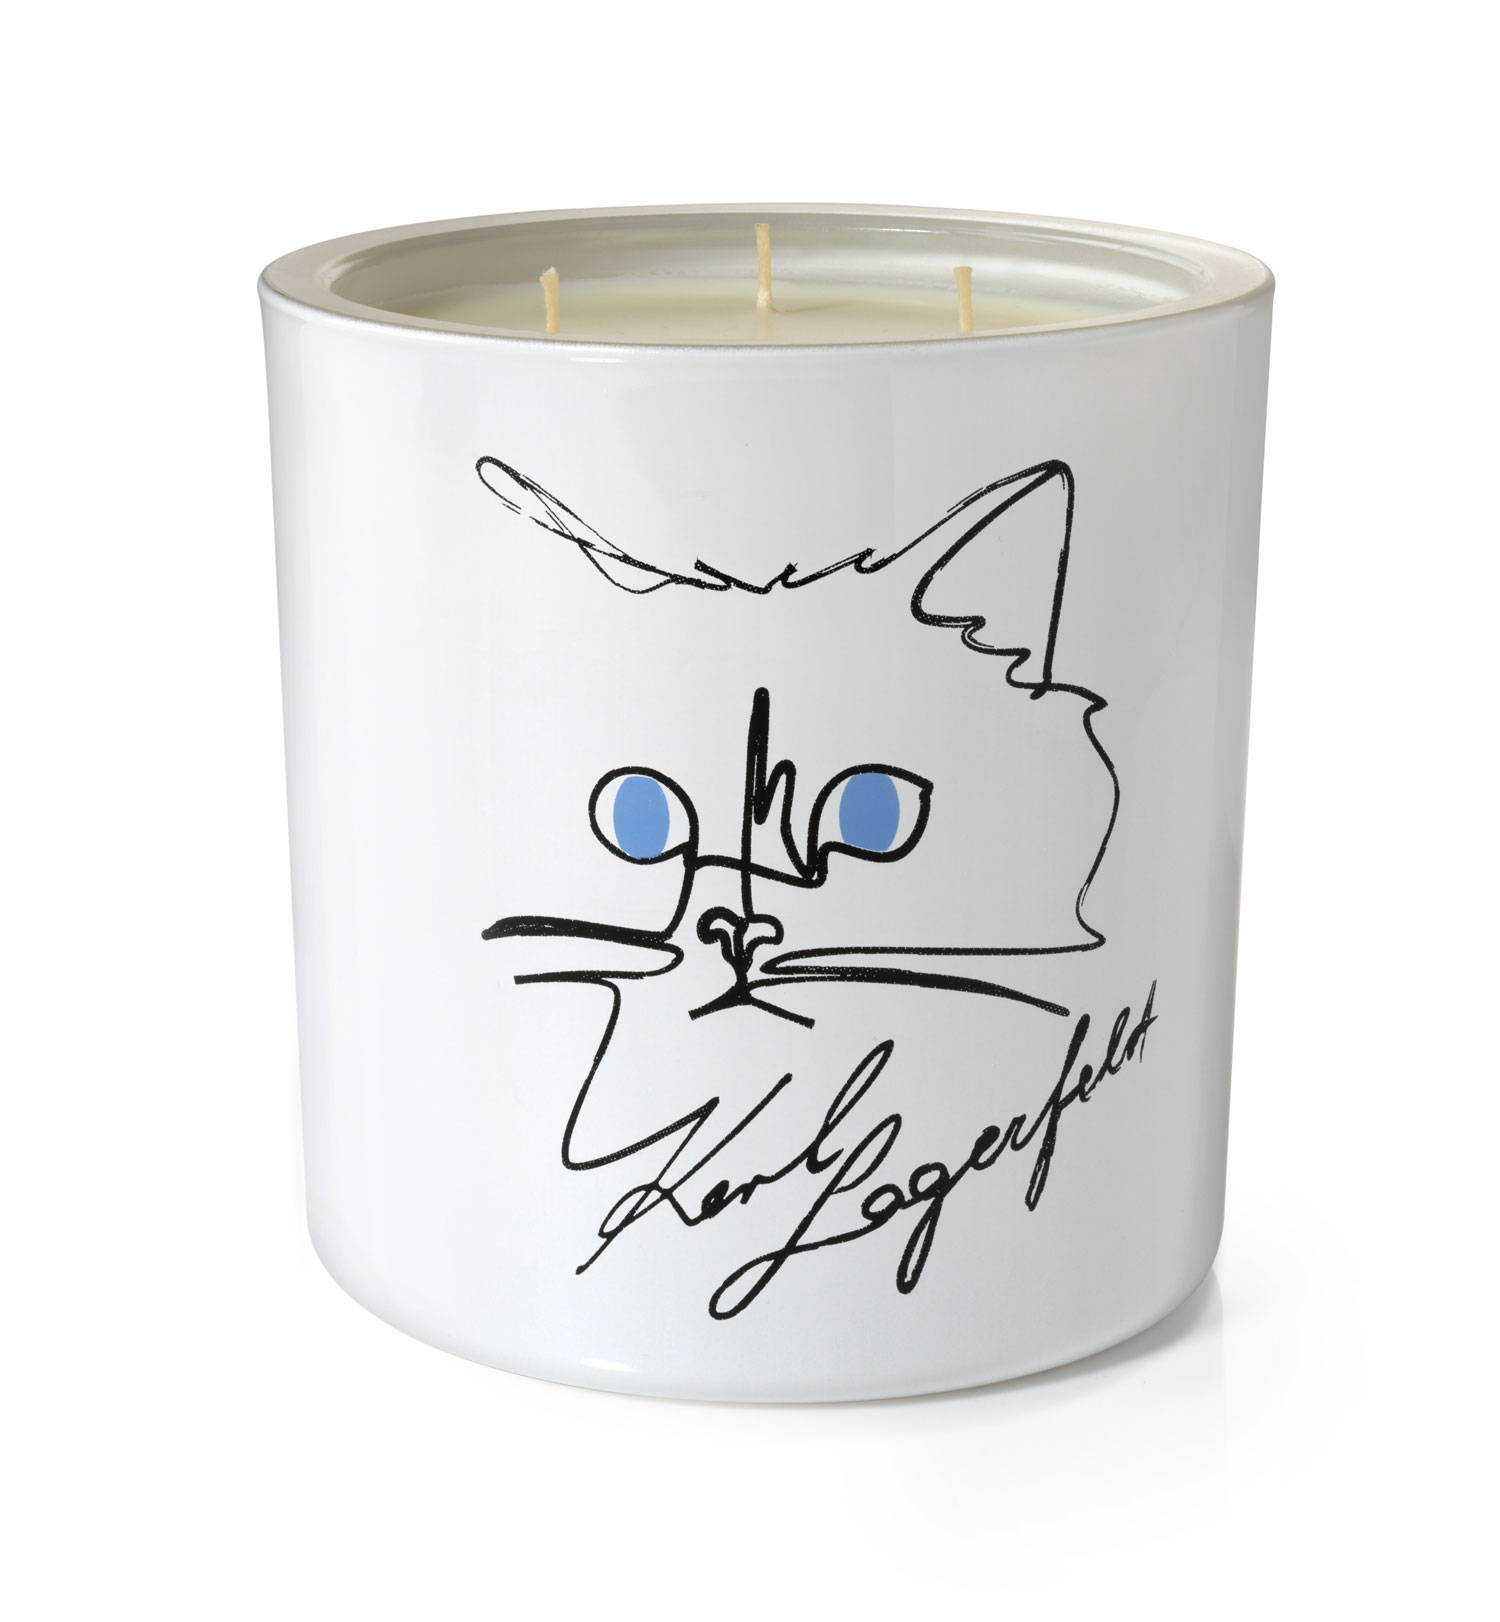 "Candle Choupette, ""Candle Choupette"" The adorable and famous Choupette now has her own candle. KARL LAGERFELD and perfumer John-Paul Welton have imagined a refined and elegant delightful scent. This spicy fragrance full of contrasts oscillates between prickly and delicate notes, unveiling in its delicious trail a new facet of Karl Lagerfeld's personality. Who could resist ""Candle Choupette""!"